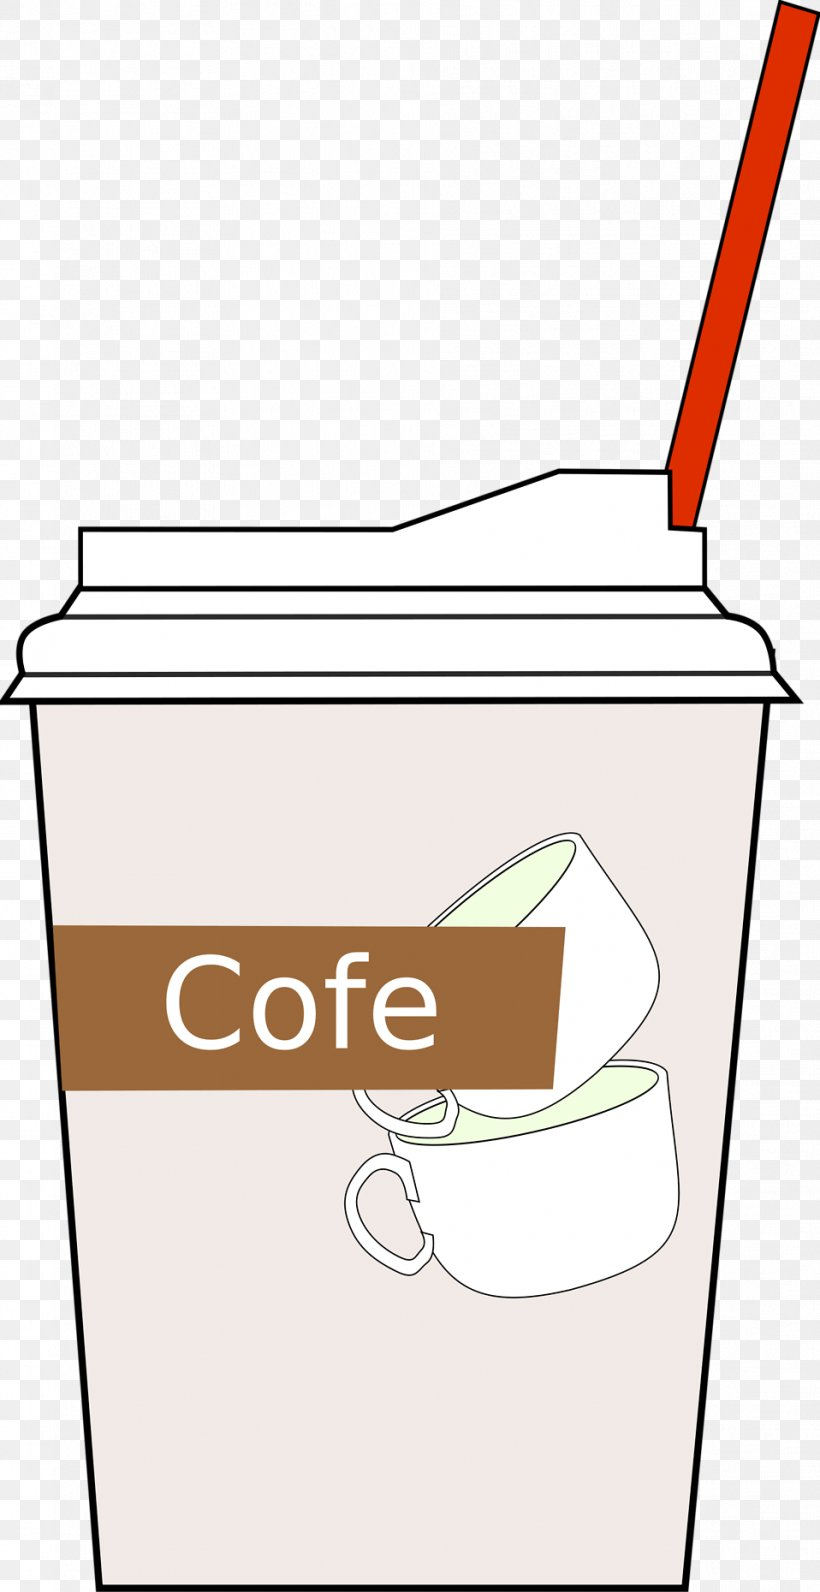 Cafe Iced Coffee Coffee Cup Clip Art, PNG, 958x1860px, Cafe.